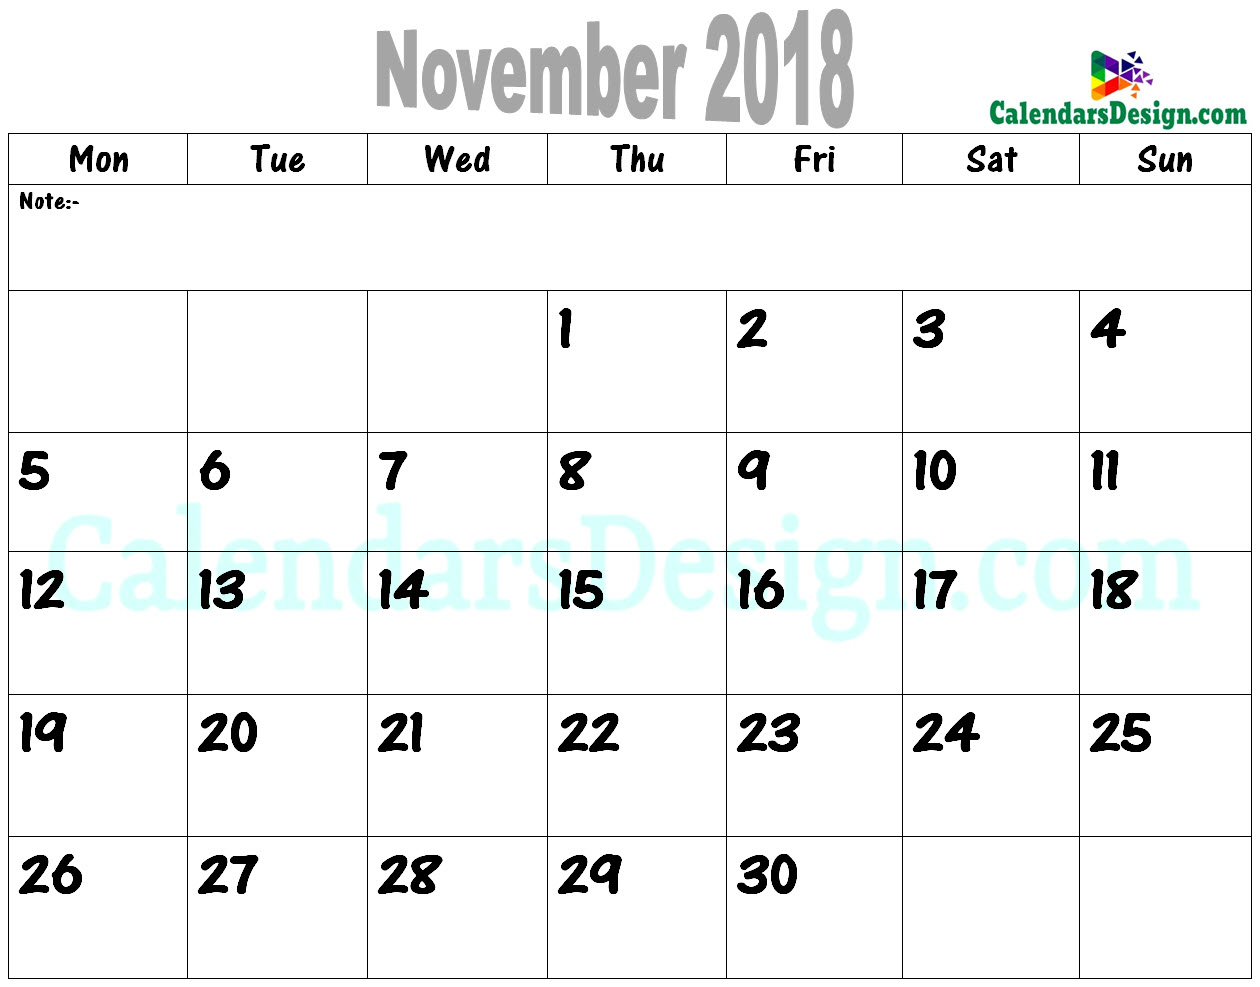 photograph relating to Printable November Calendar Pdf called November 2018 Calendar PDF